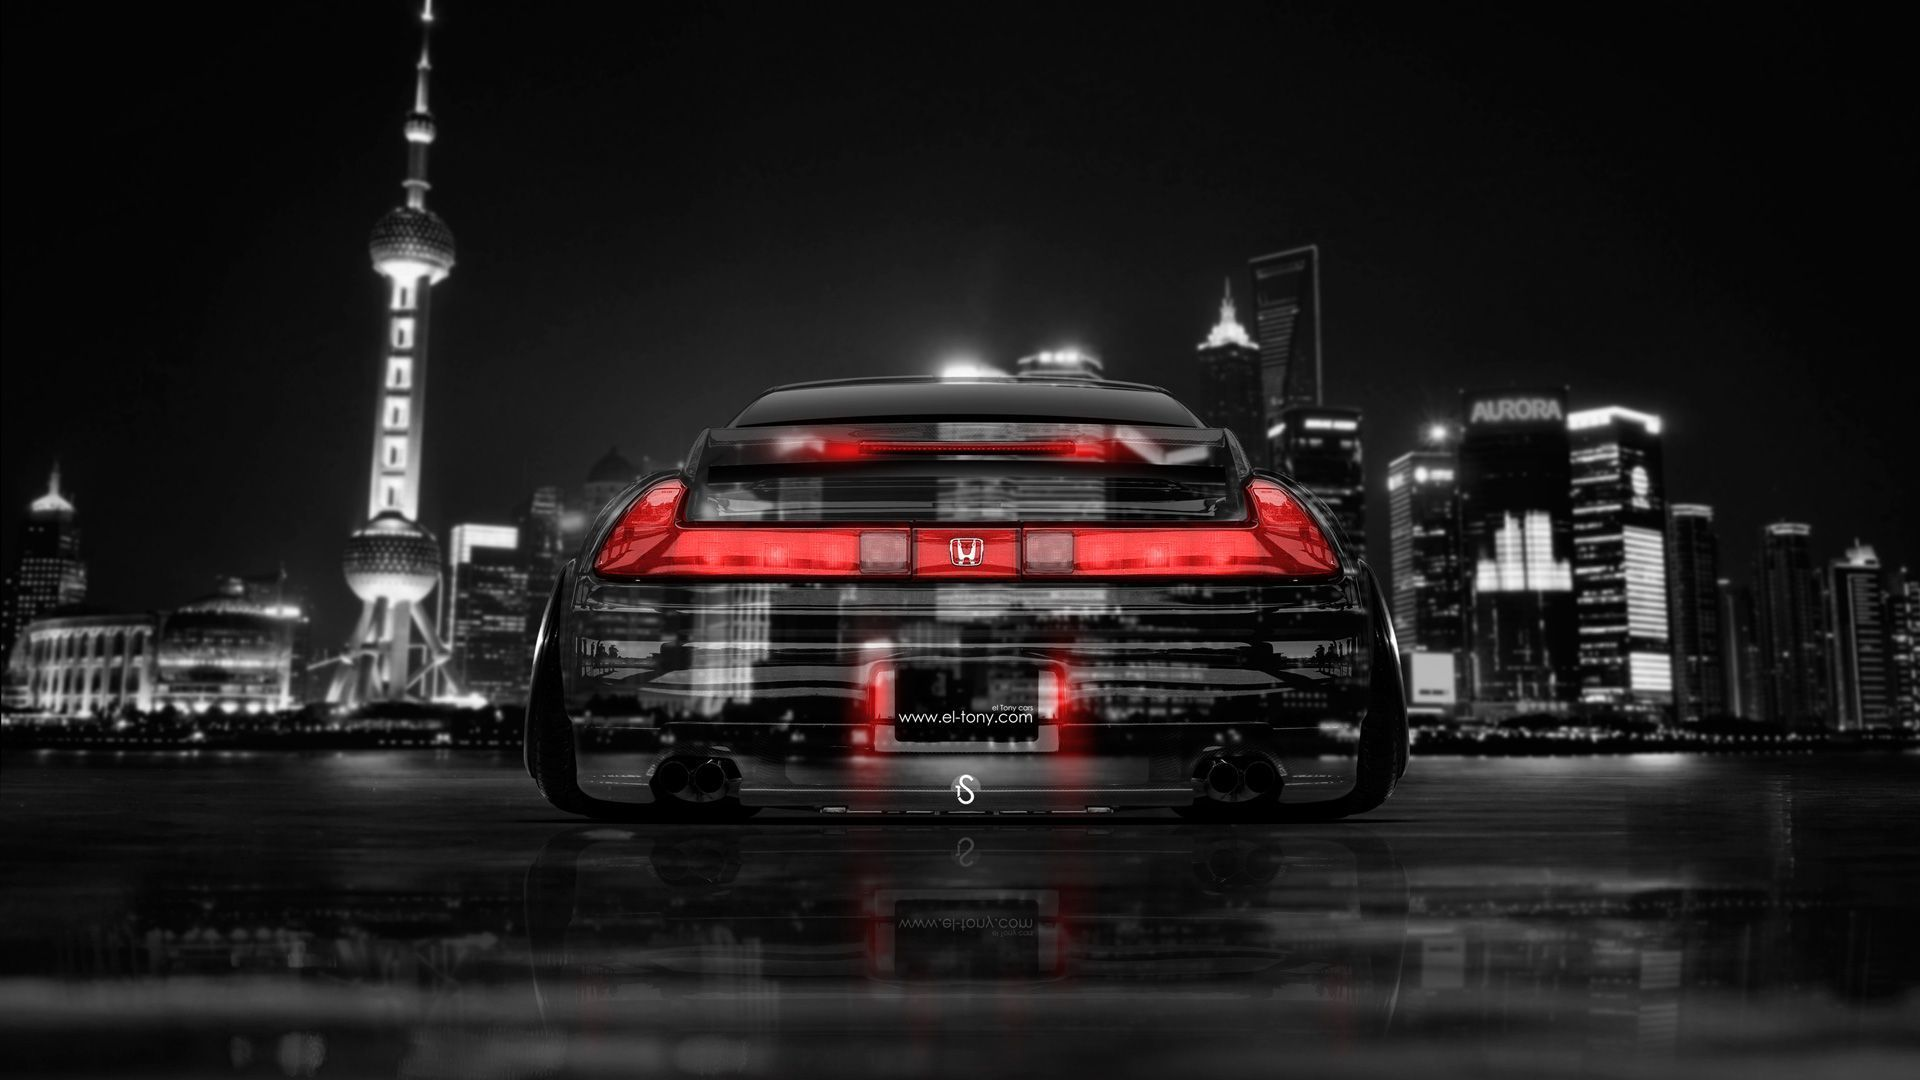 Delicieux Honda NSX JDM Back Crystal City Car 2014 « El Tony